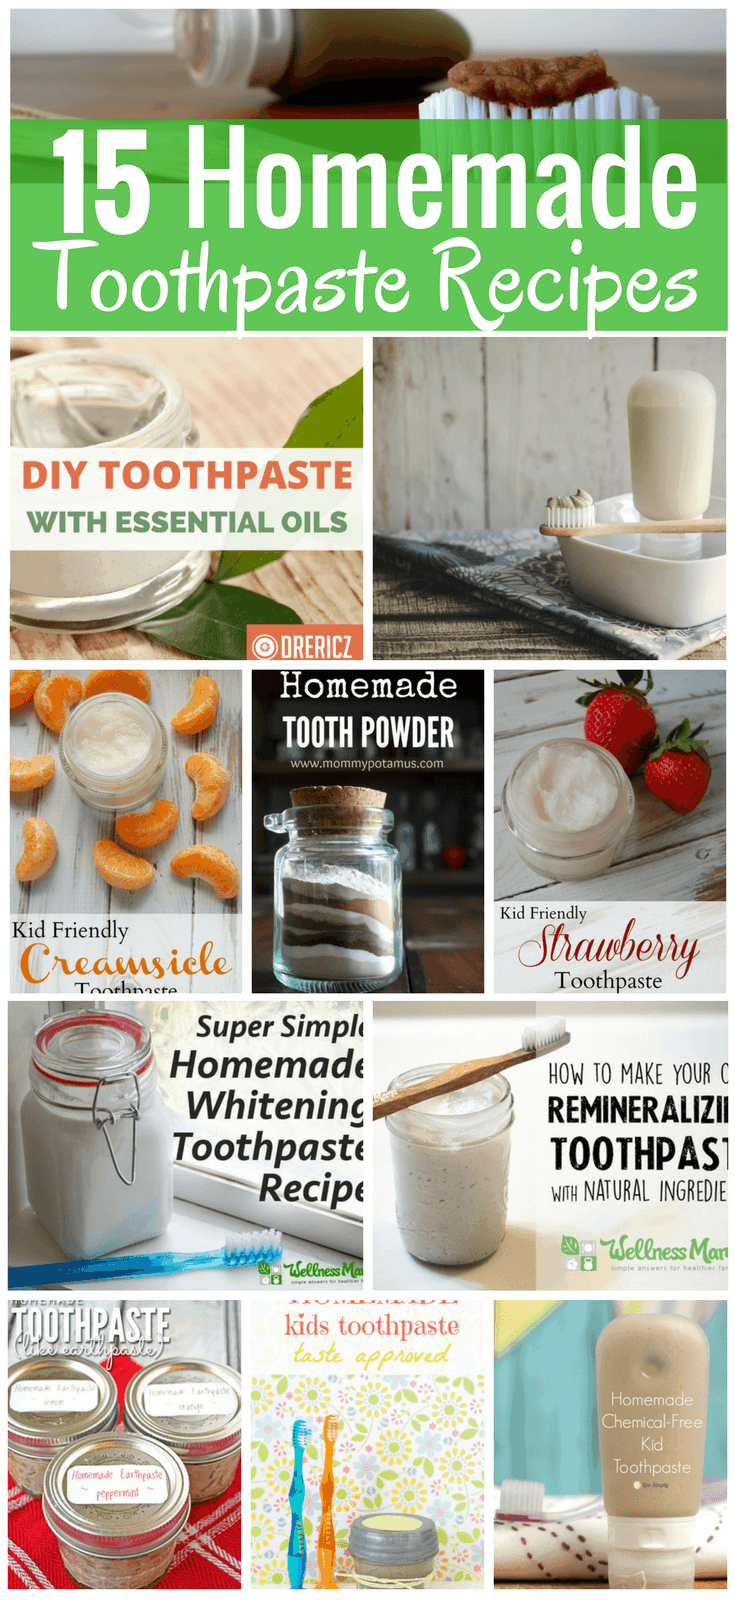 Whether you're looking to whiten teeth without harsh bleach, needing a new flavor, or wanting to help ease a cavity, we've got a homemade toothpaste recipe for you. Check out these options below for DIY toothpaste recipes that fit every taste, budget, and allergy.